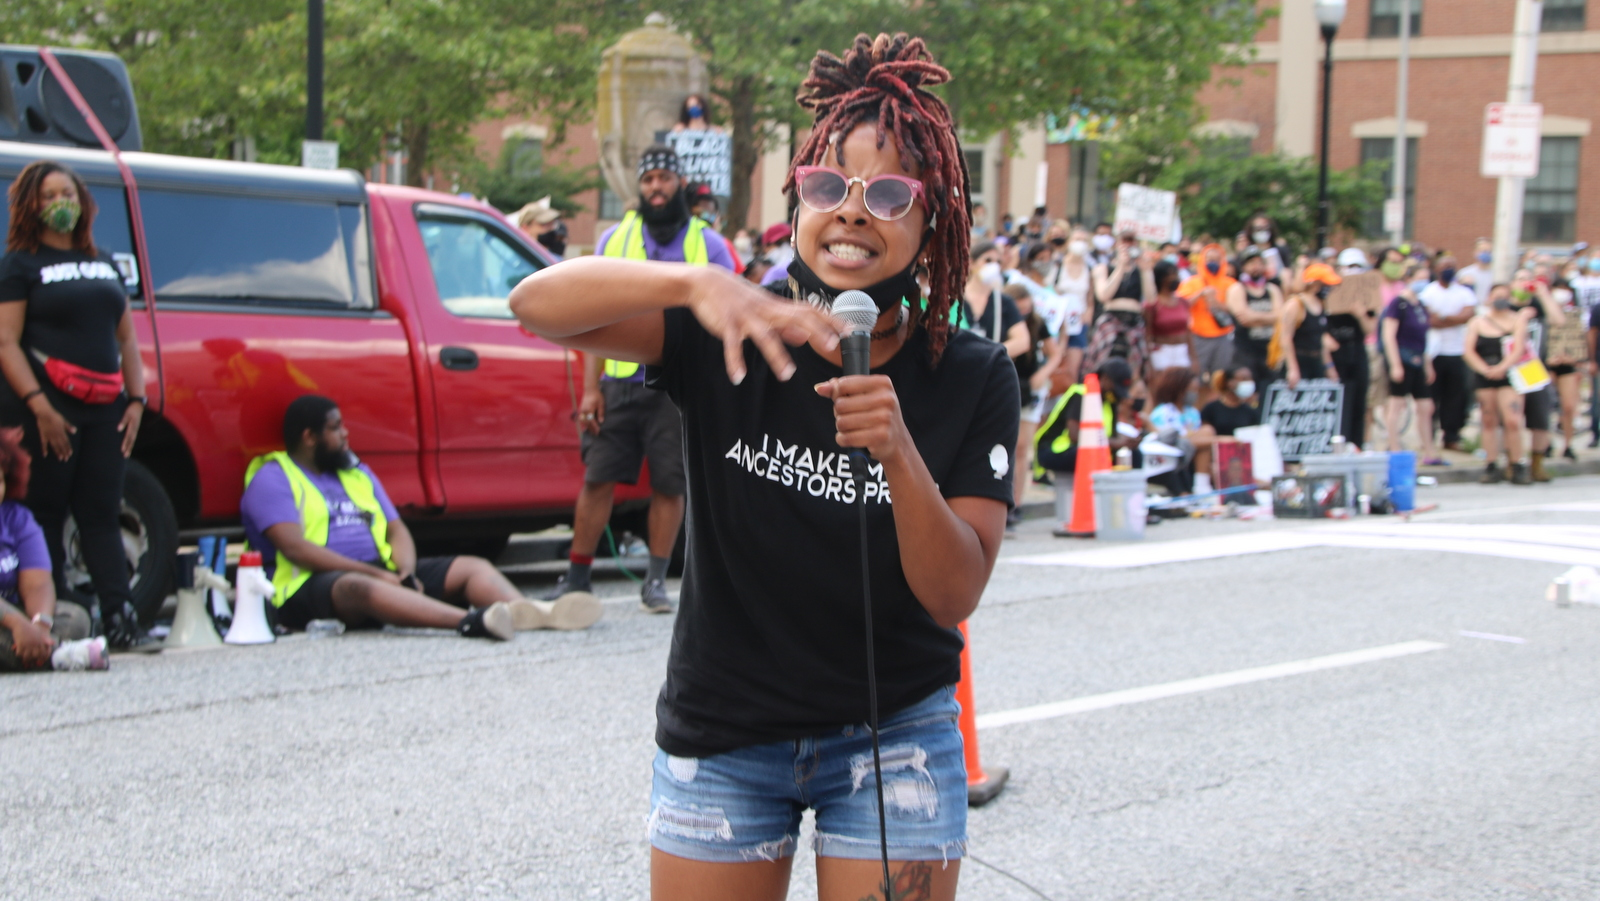 Kish the Lioness performs at the protest. (Louis Krauss)